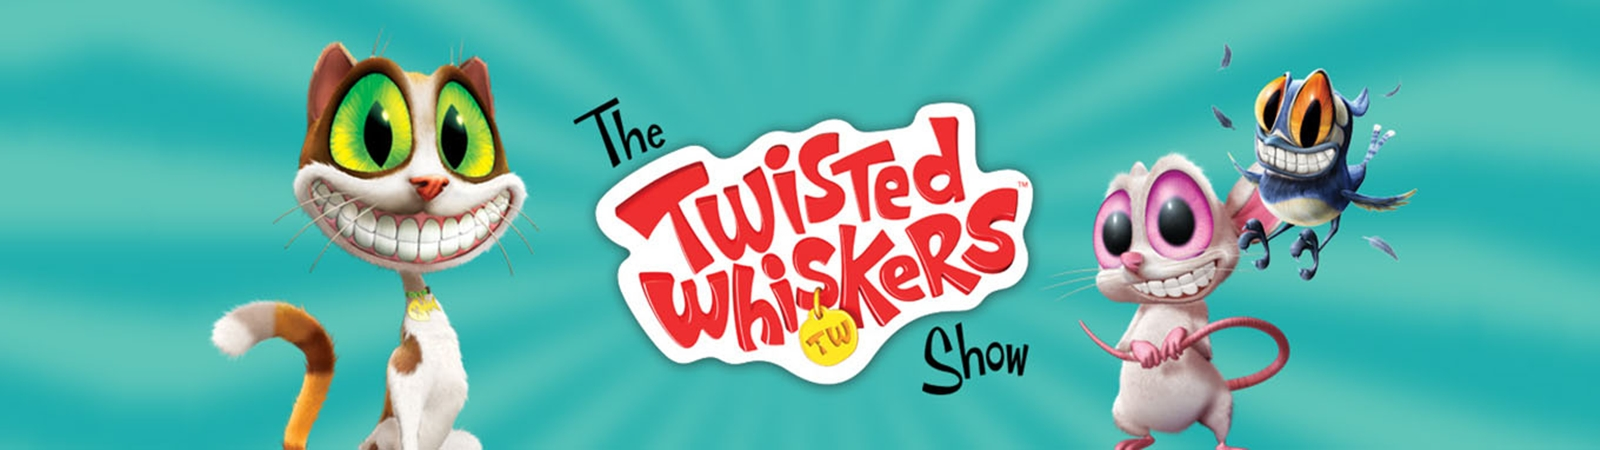 The Twisted Whiskers Show - Season 2